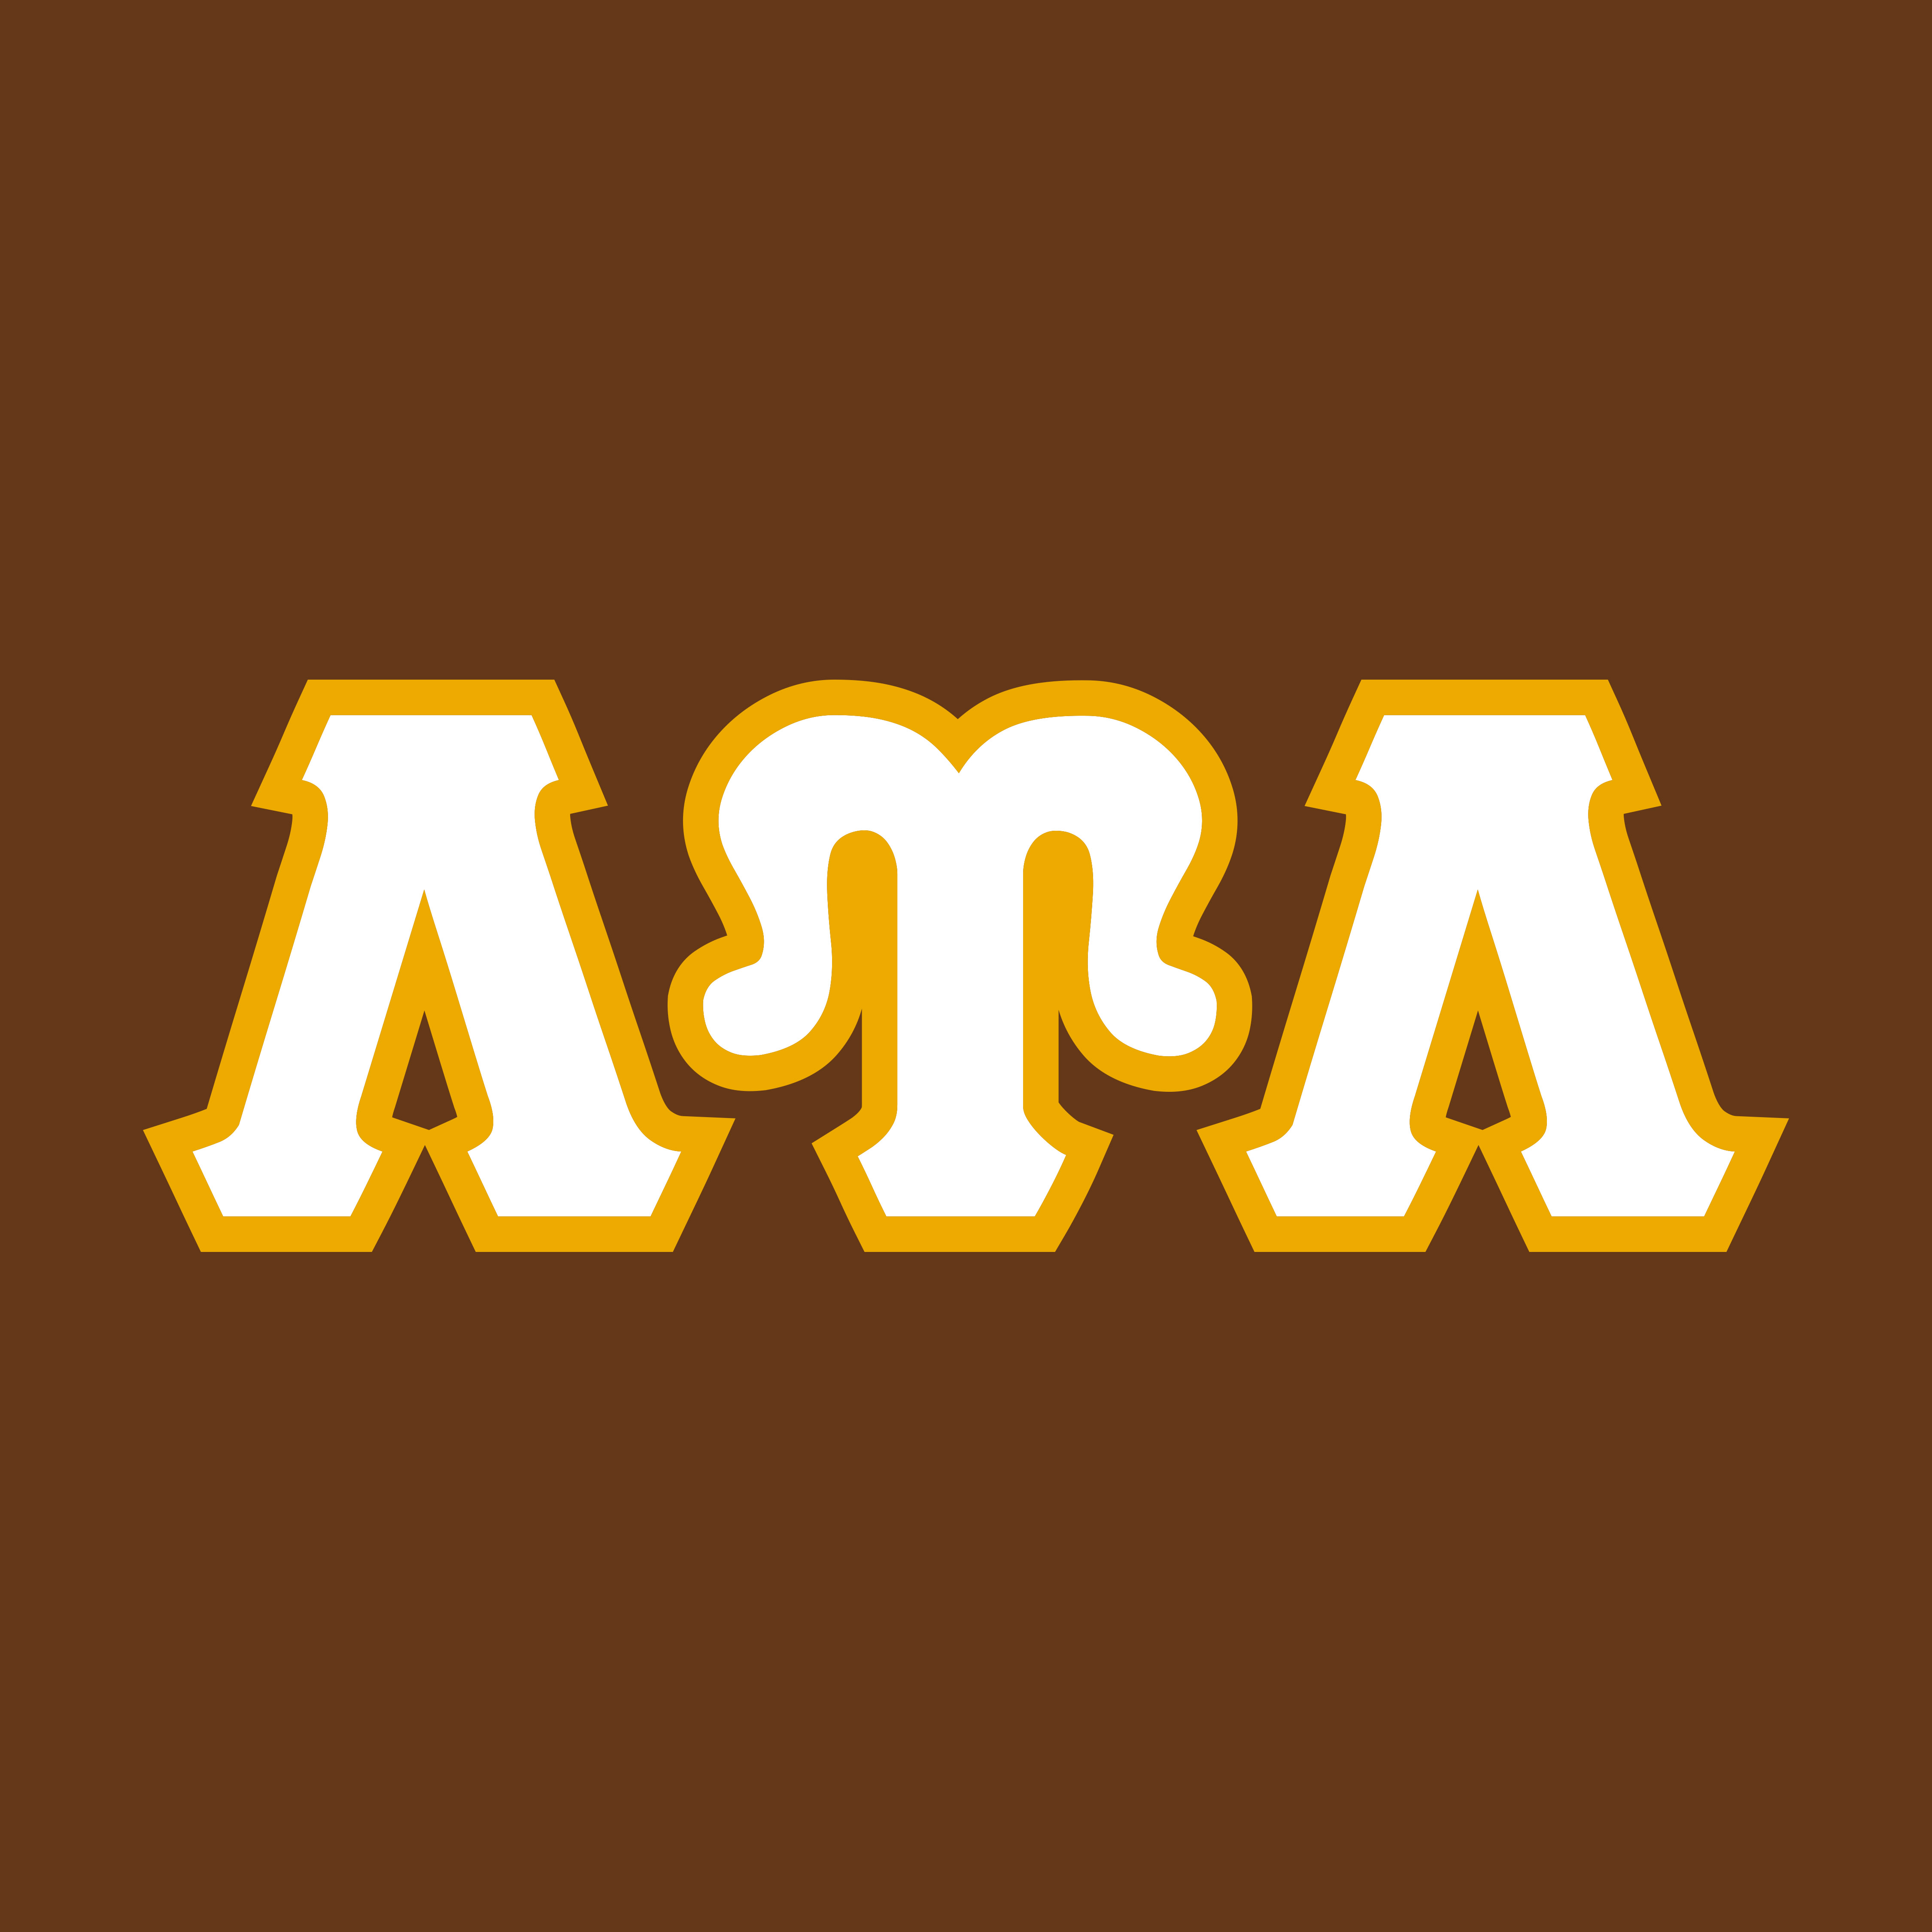 LUL Letters White/Gold on Brown